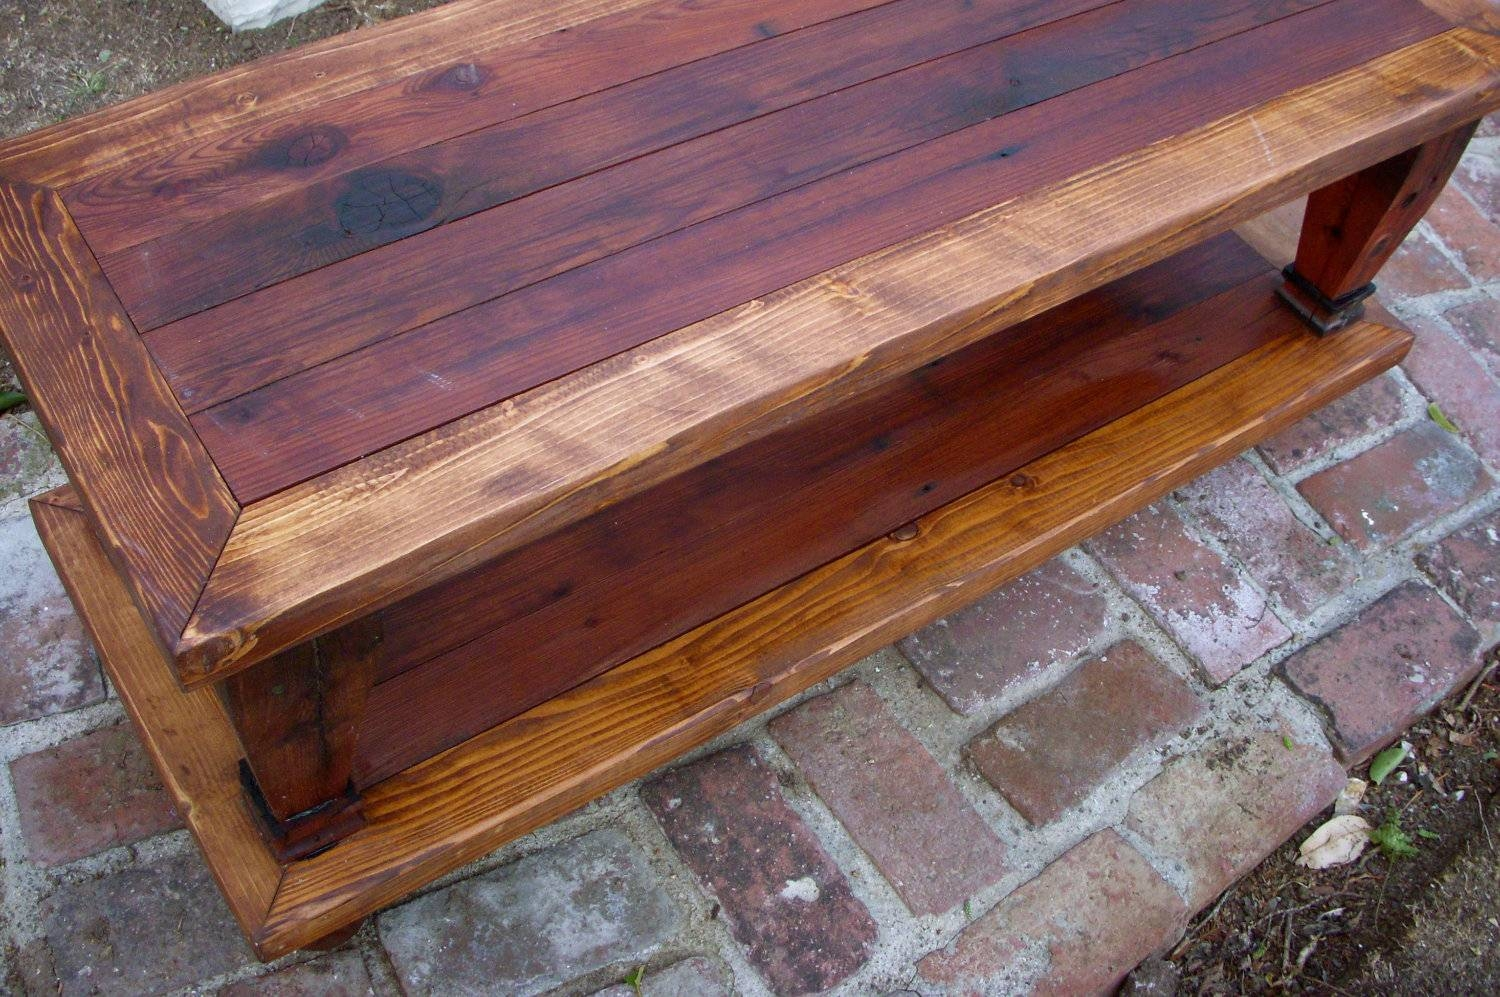 Wood Coffee Table Handmade Furniture Living Room Shabby throughout Handmade Wooden Coffee Tables (Image 14 of 15)